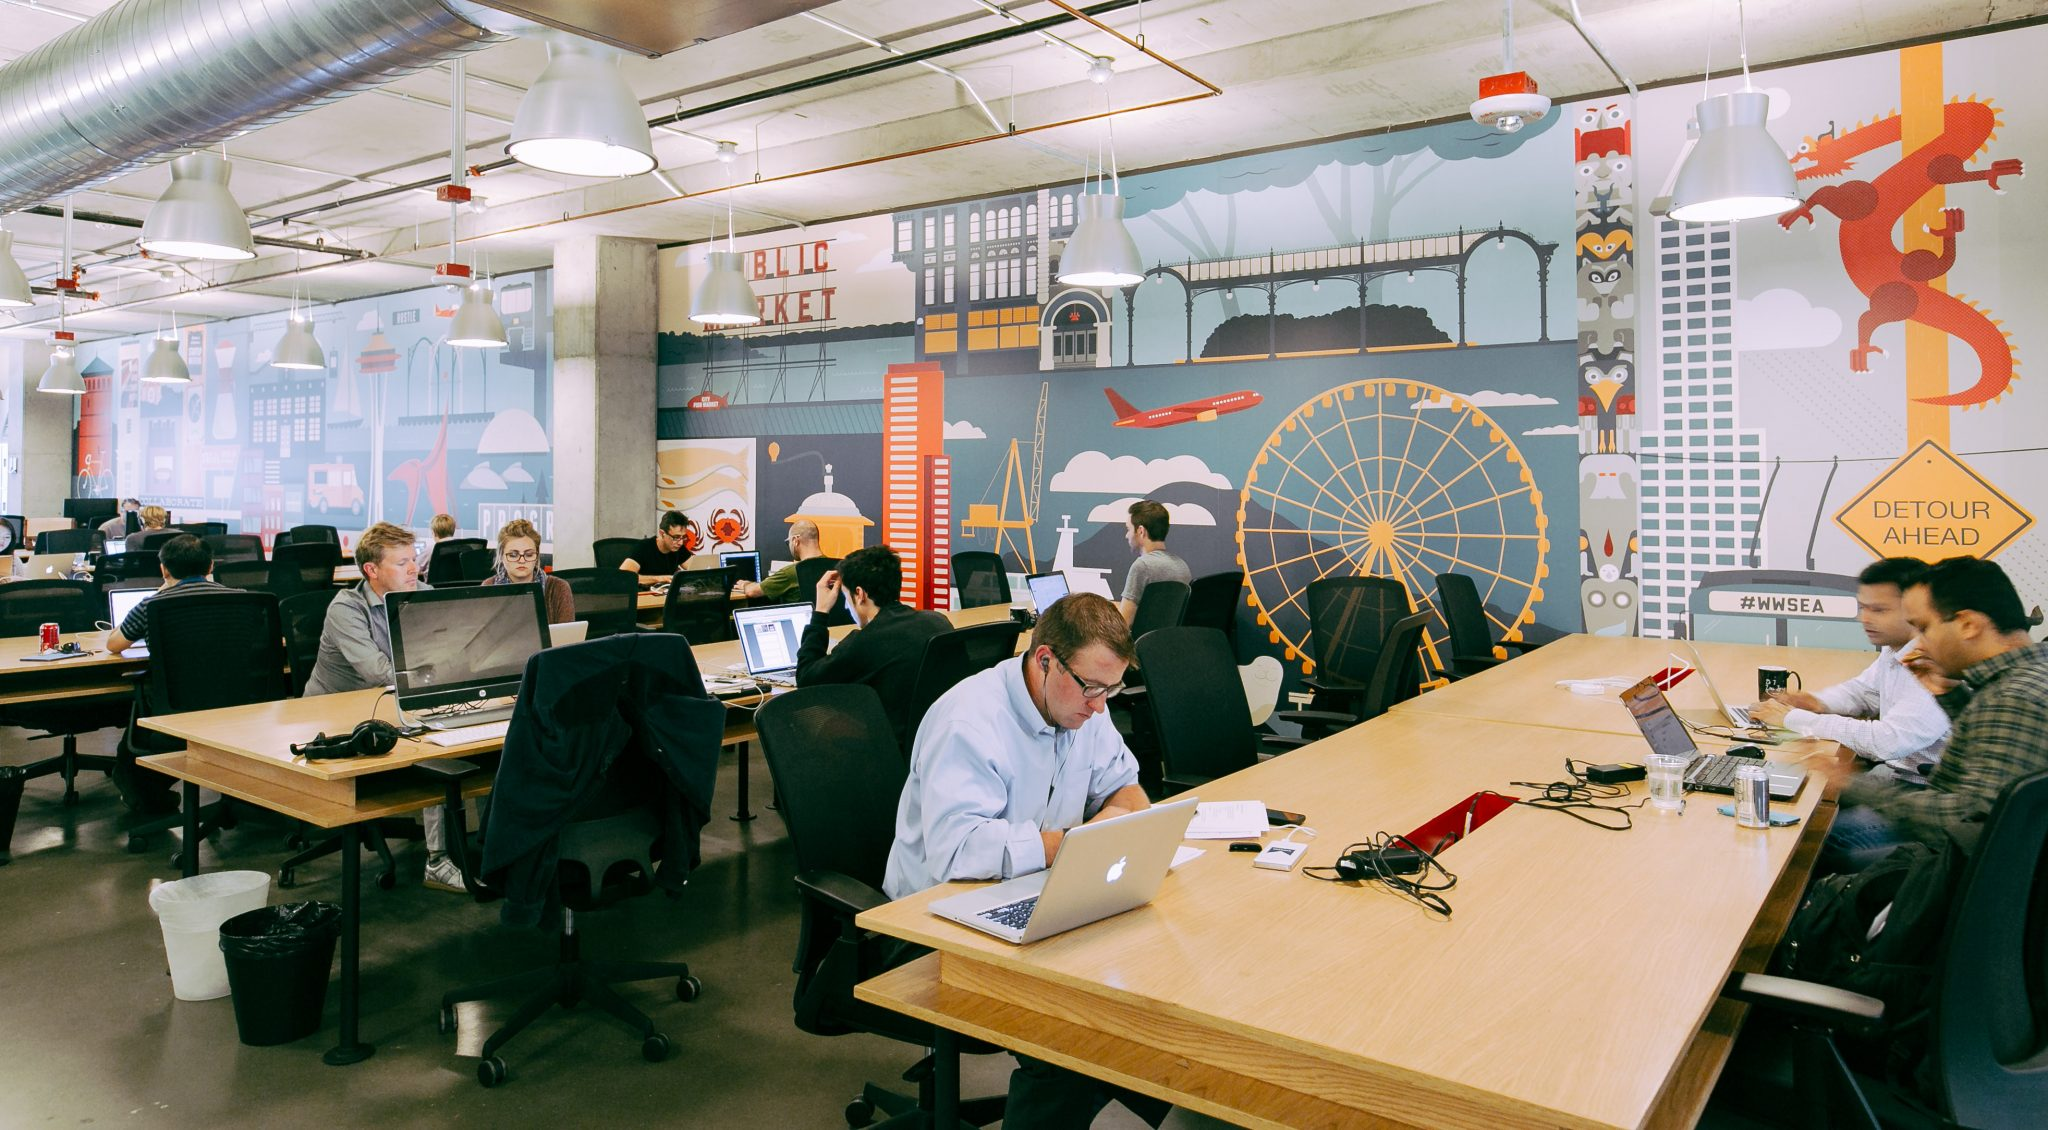 Consultants and freelancers in a co-working space